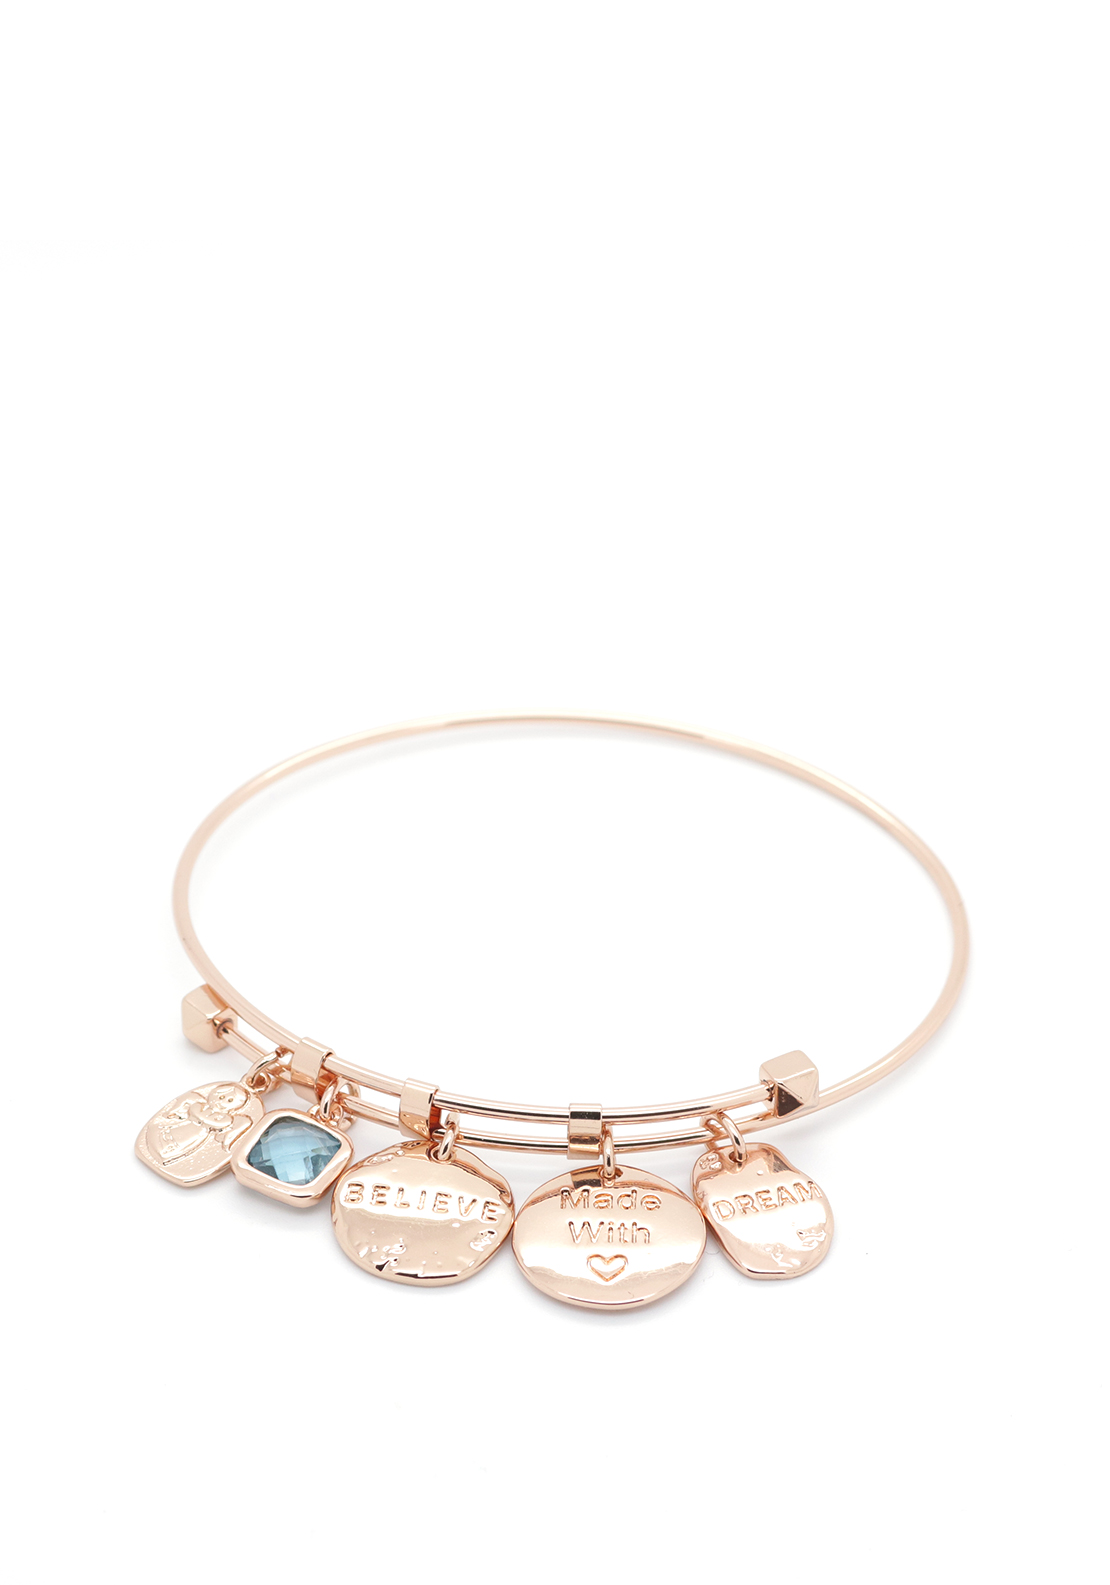 Absolute Jewellery Believe Dream Bangle, Rose Gold